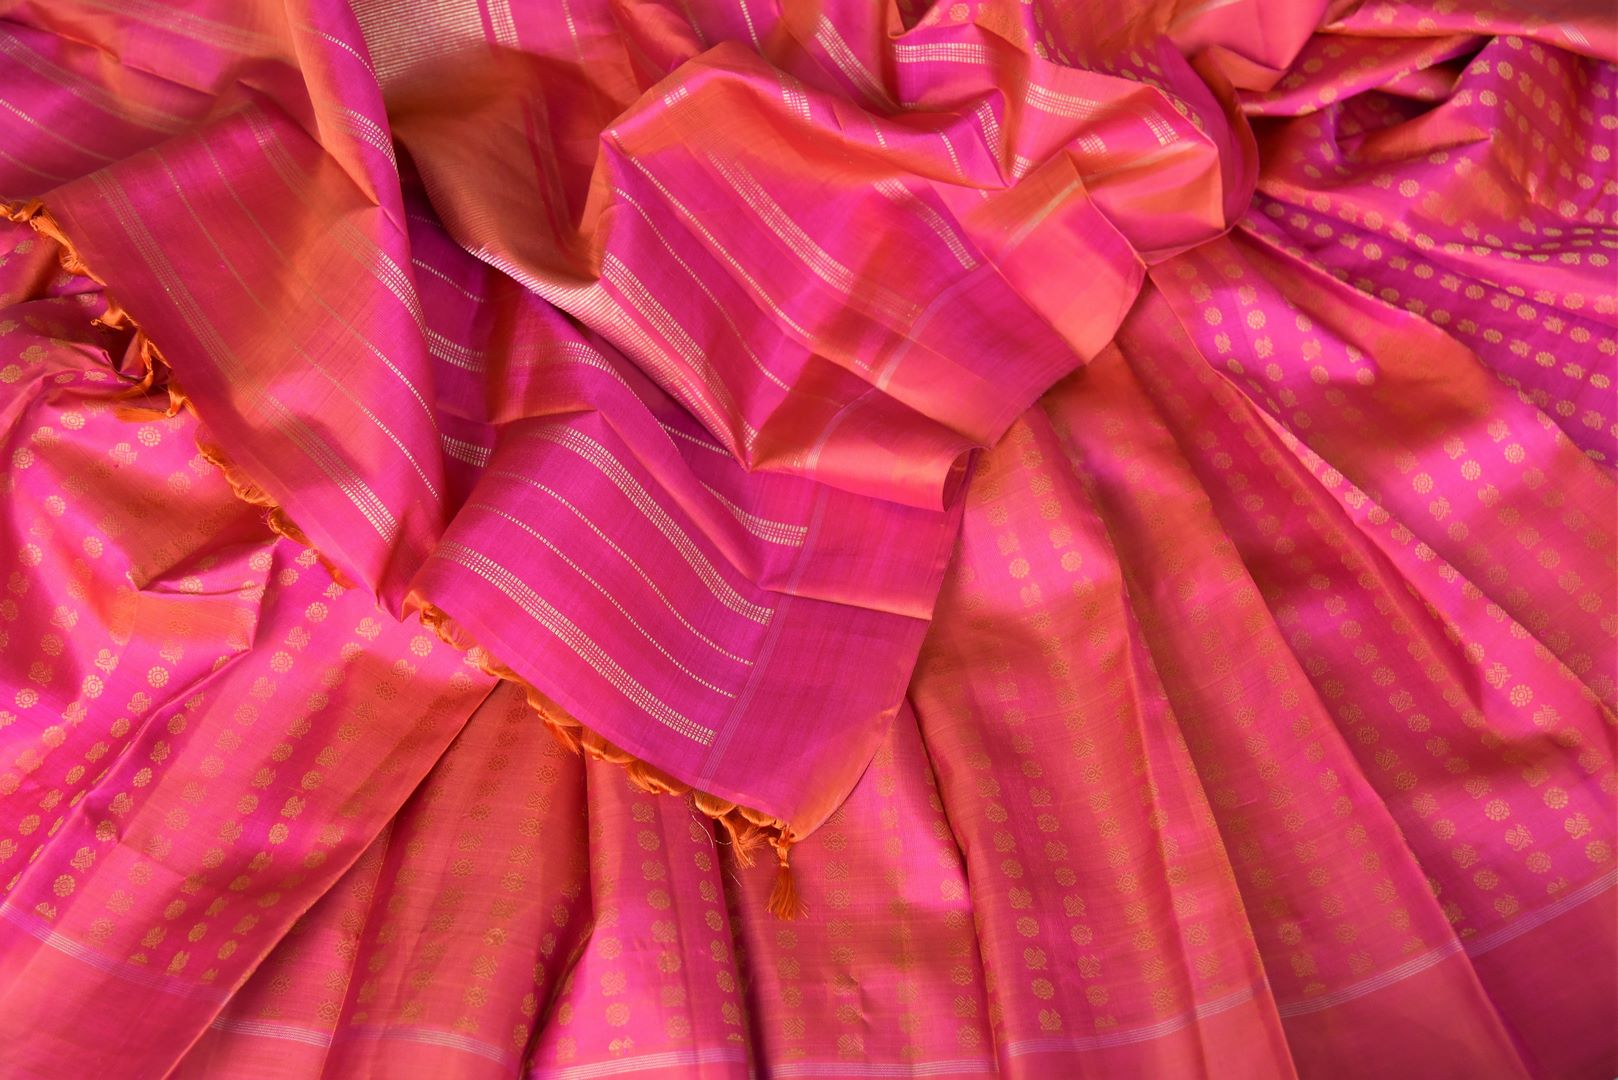 Buy orange pink Kanchipuram saree online in USA with peacock and flower zari buta. Shine bright in best of Indian designer sarees from Pure Elegance Indian fashion store in USA on special occasions. Choose from a splendid variety of Kanjivaram silk sarees, Banarasi sarees, pure handwoven saris. Shop online.-details